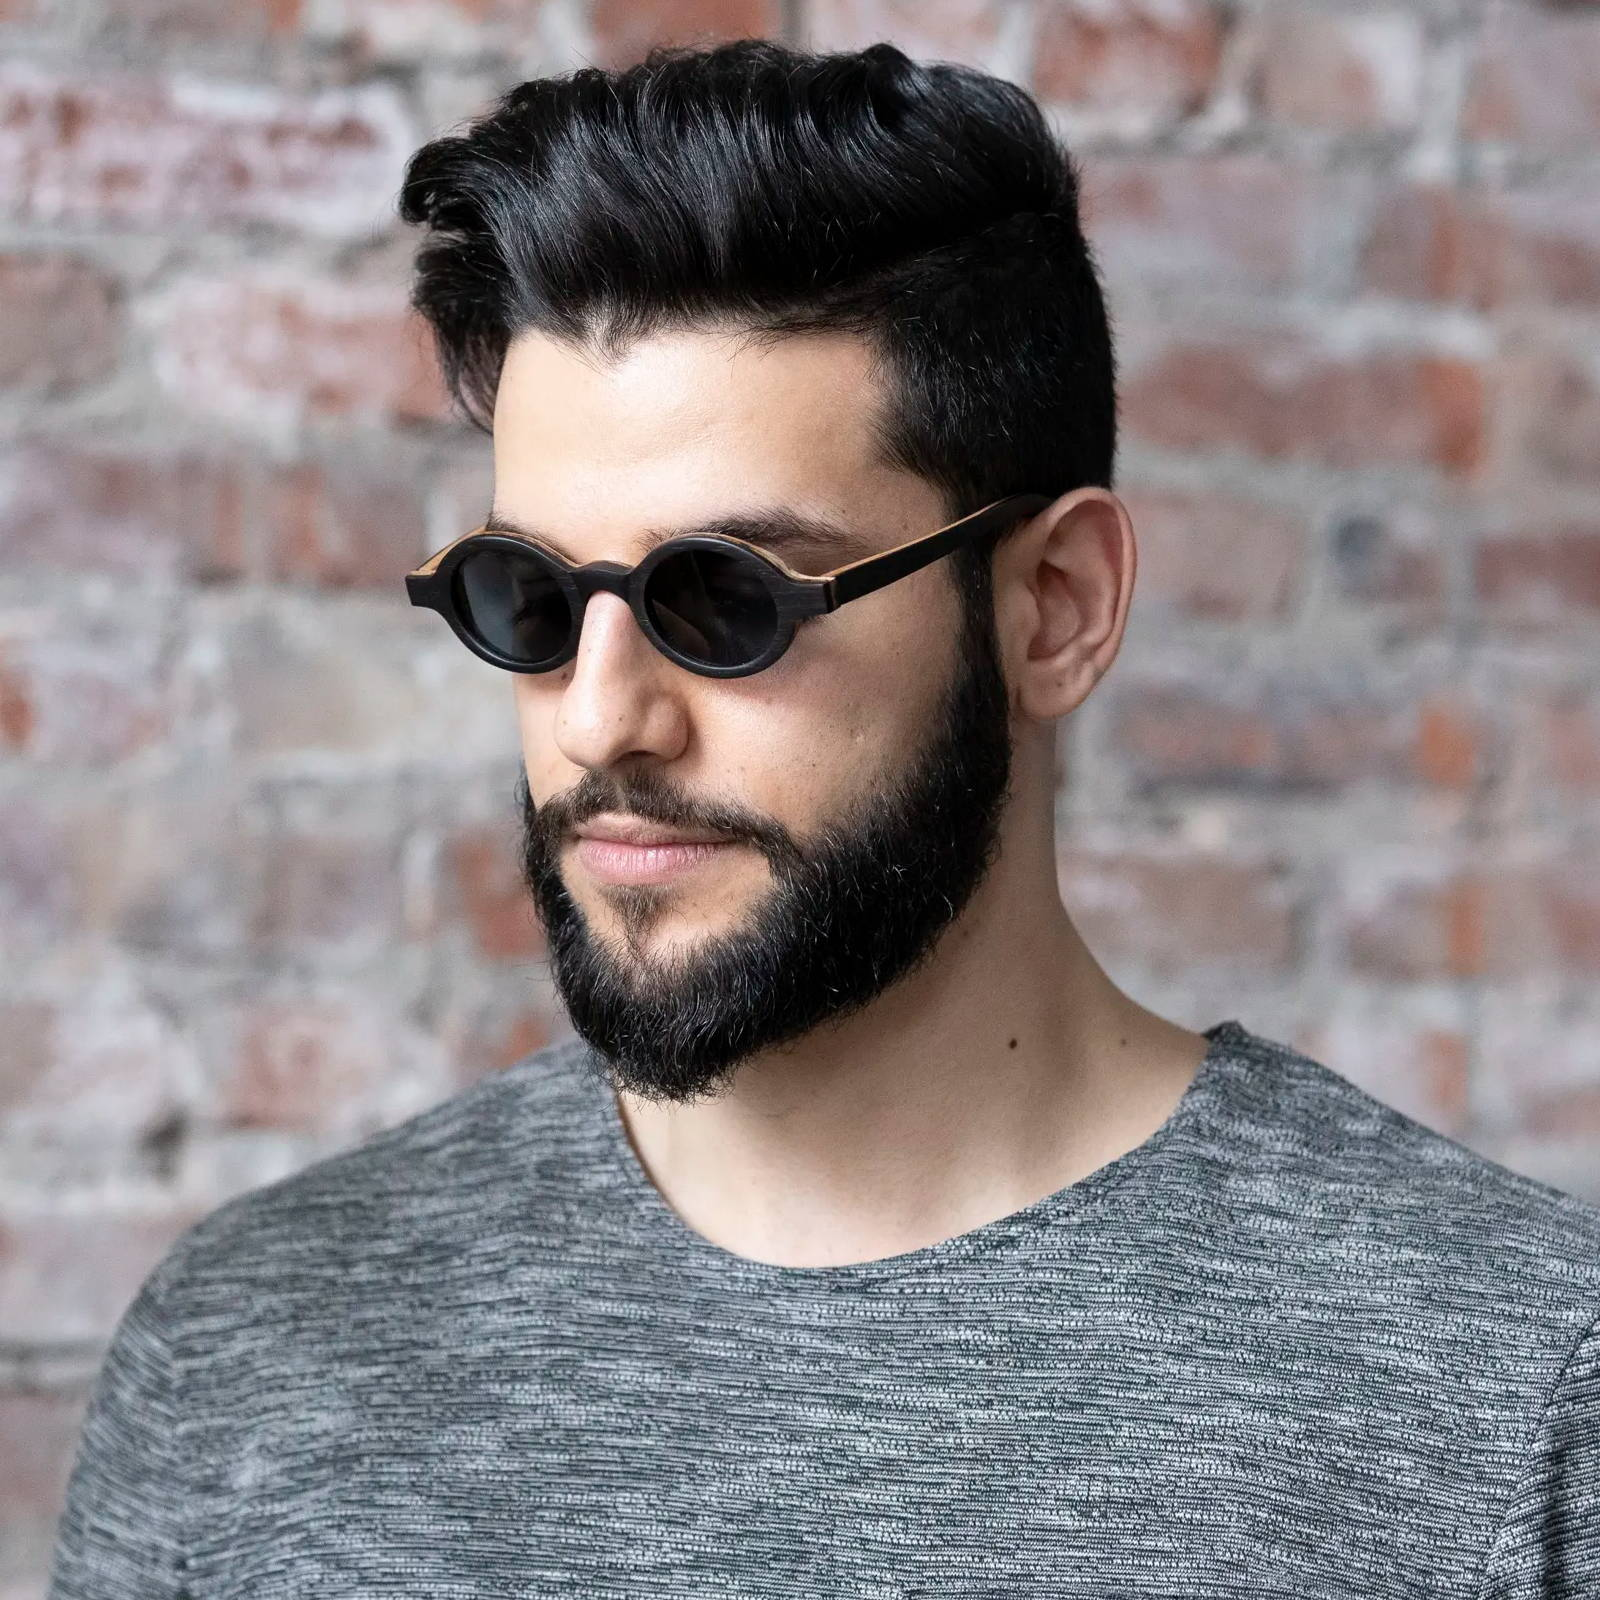 Man wearing Kraywoods Magnolia, Vintage Round Sunglasses made from Ebony wood with polarized lenses